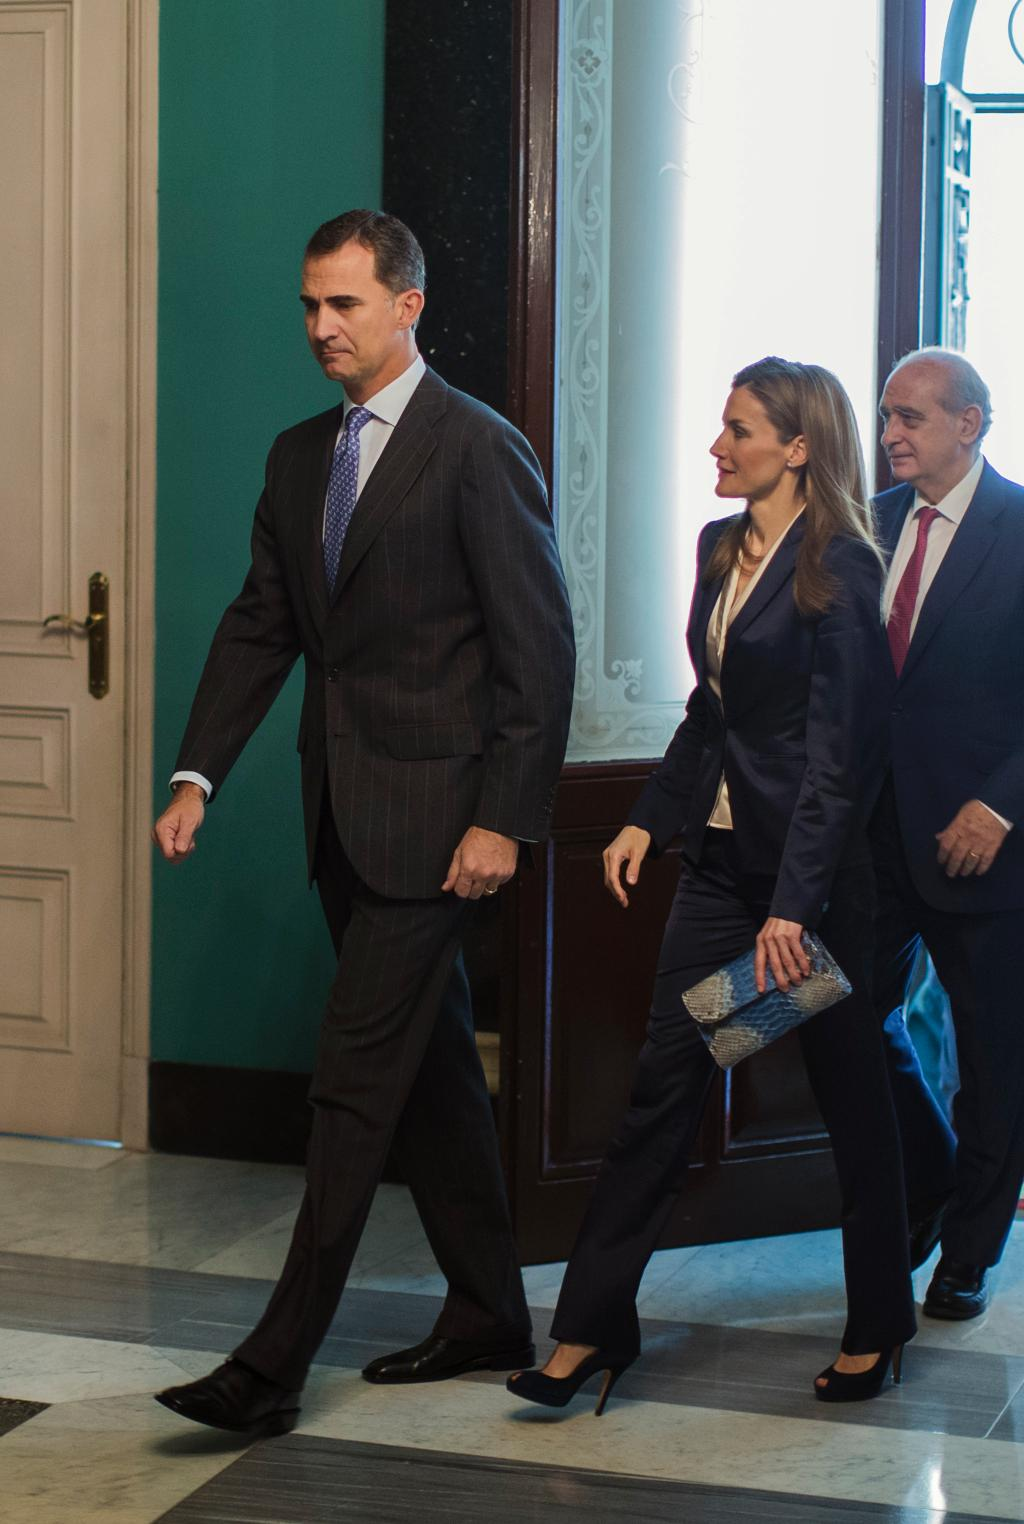 Spain's new King Felipe meets with victims of terrorism at 1st official act with Queen Letizia